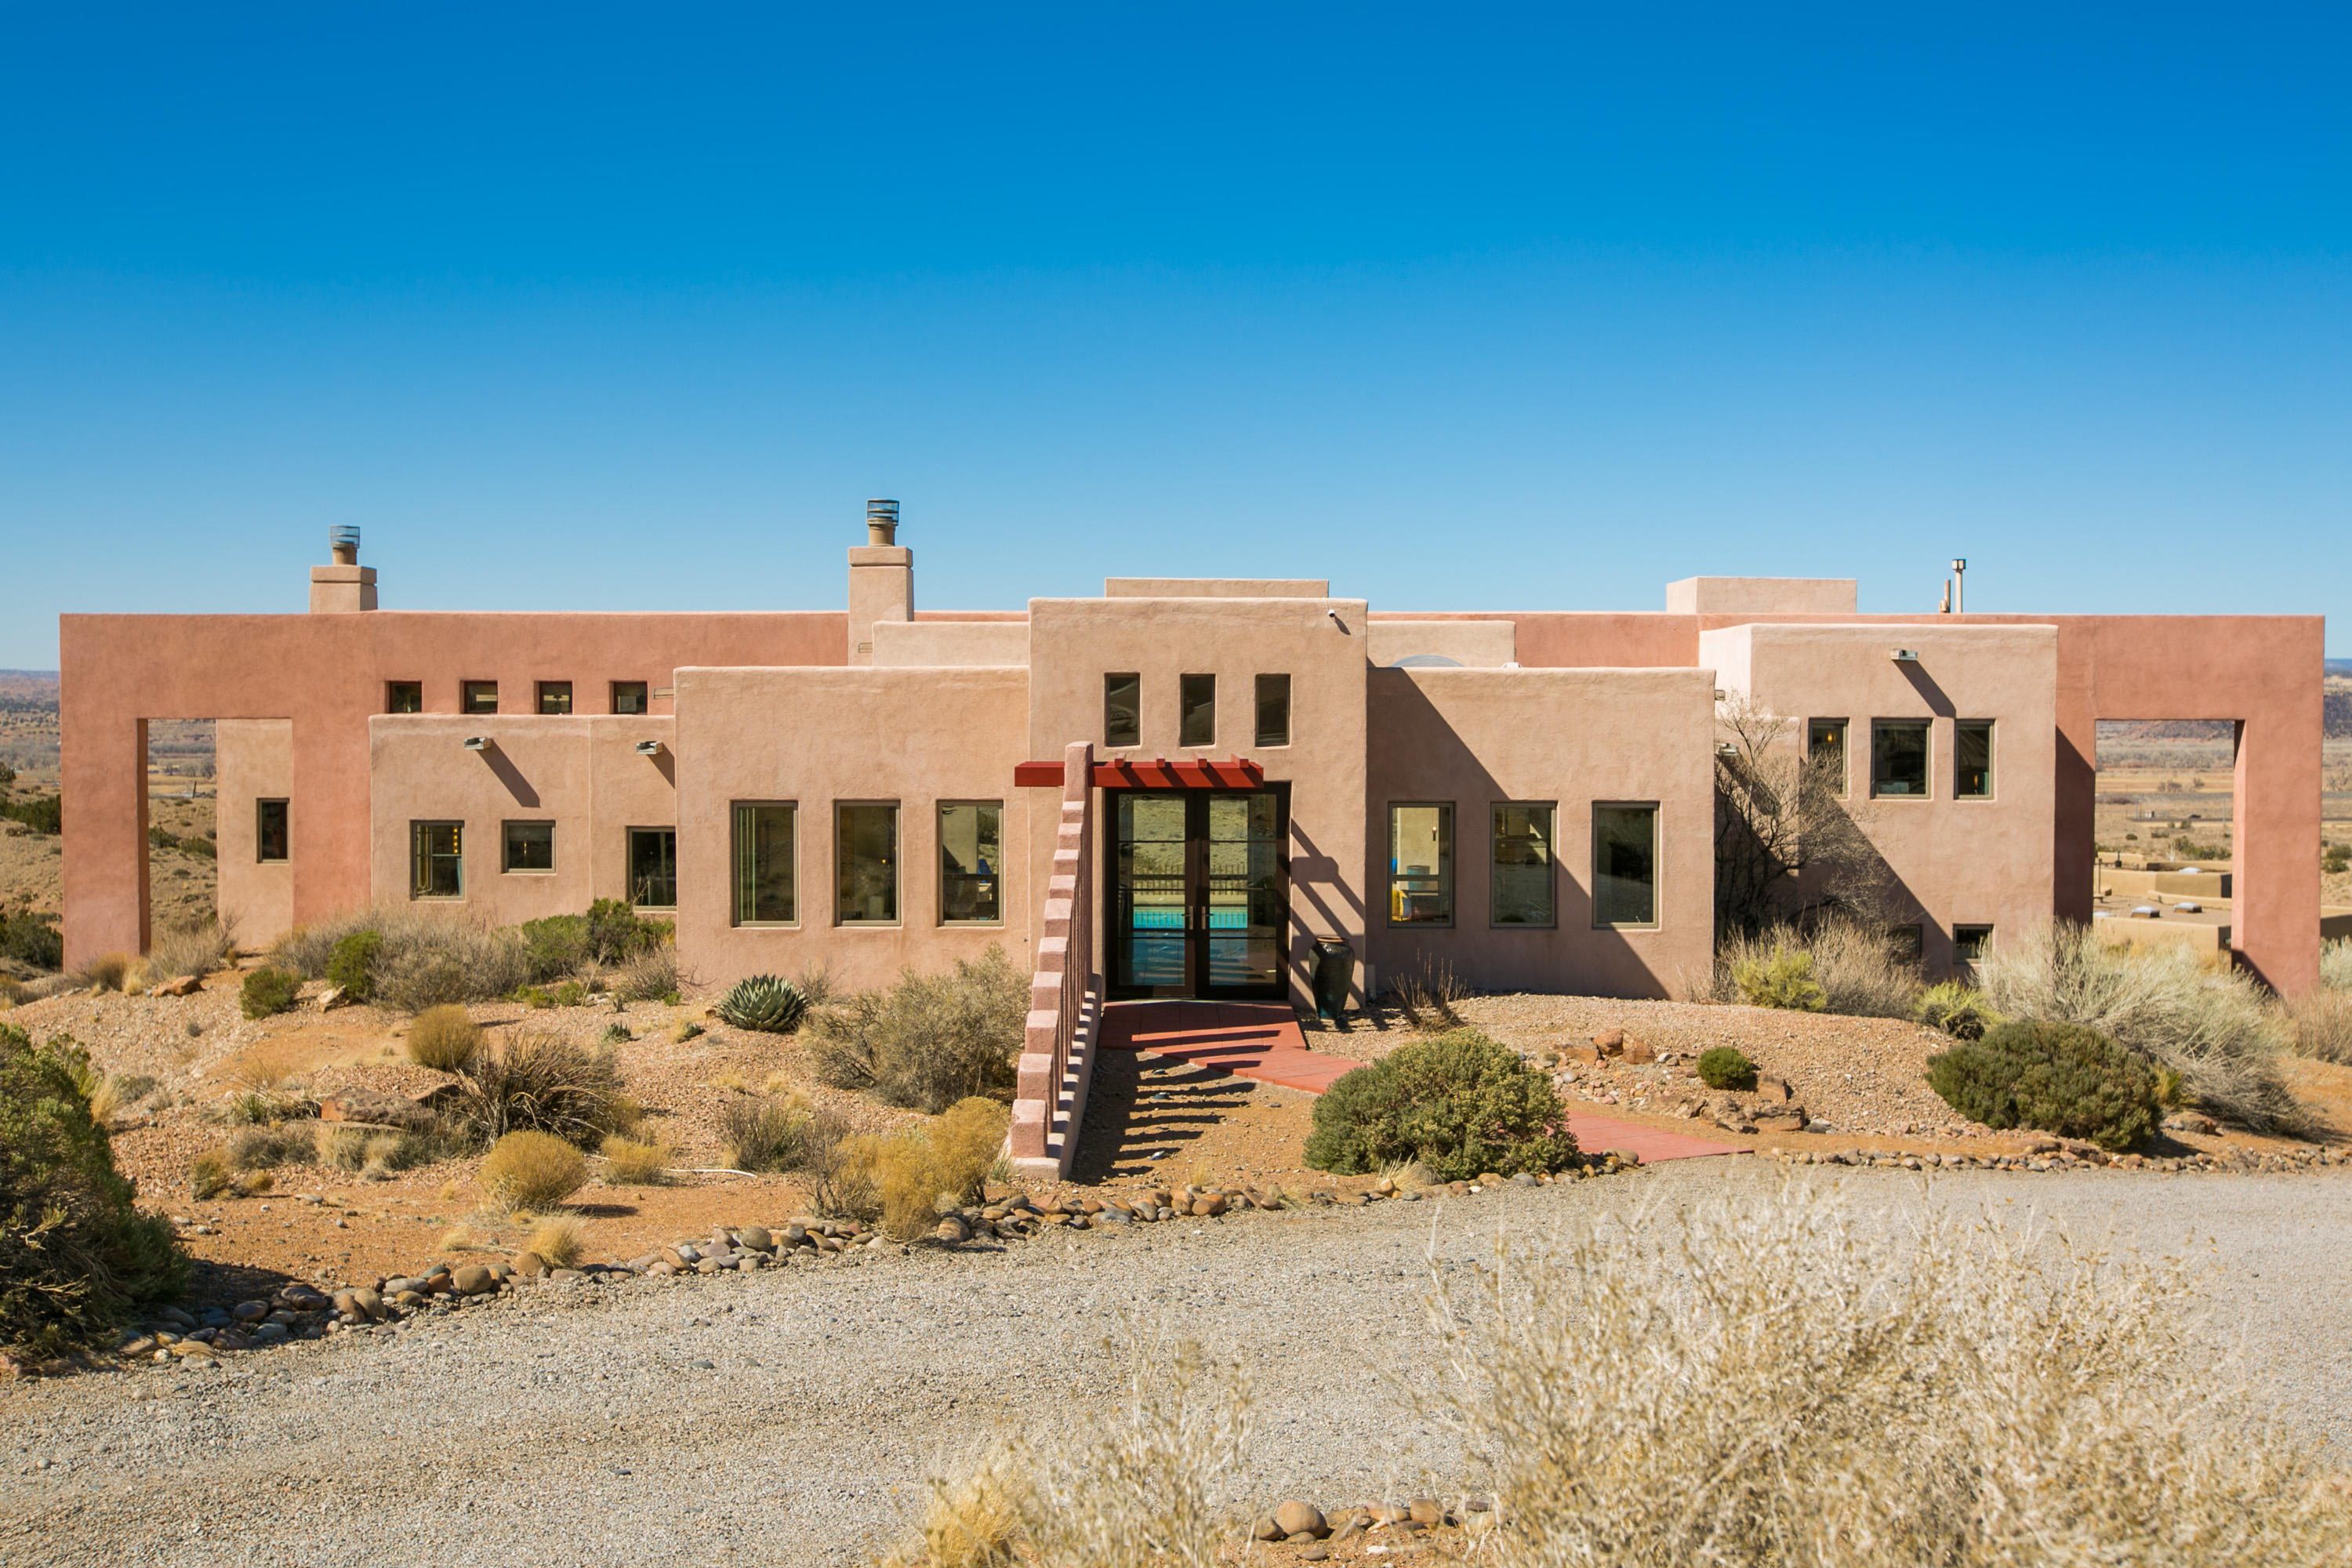 This beautiful contemporary Southwest home was thoughtfully placed upon a 2-acre cul-de-sac lot to showcase the stunning 360 views of the Sandia and Jemez mountain ranges, as well as the breathtaking sunsets, city lights and western mesas. Designed by architect Brian DePriest of Sydroya Designs, this home marries design and technology to create an ''efficient and attractive use of space.''  The great room, two master suites, both with en-suite baths & walk in closets, guest bedroom, office & media room offer flexibility & abundant living and/or remote working spaces. Luxury amenities include: travertine tile; aspen clad ceilings & vigas in the great room, den & entry; wood-clad windows; 5 sliding glass doors; chef's kitchen w/ eucalyptus cabinetry, *Click More for additional info